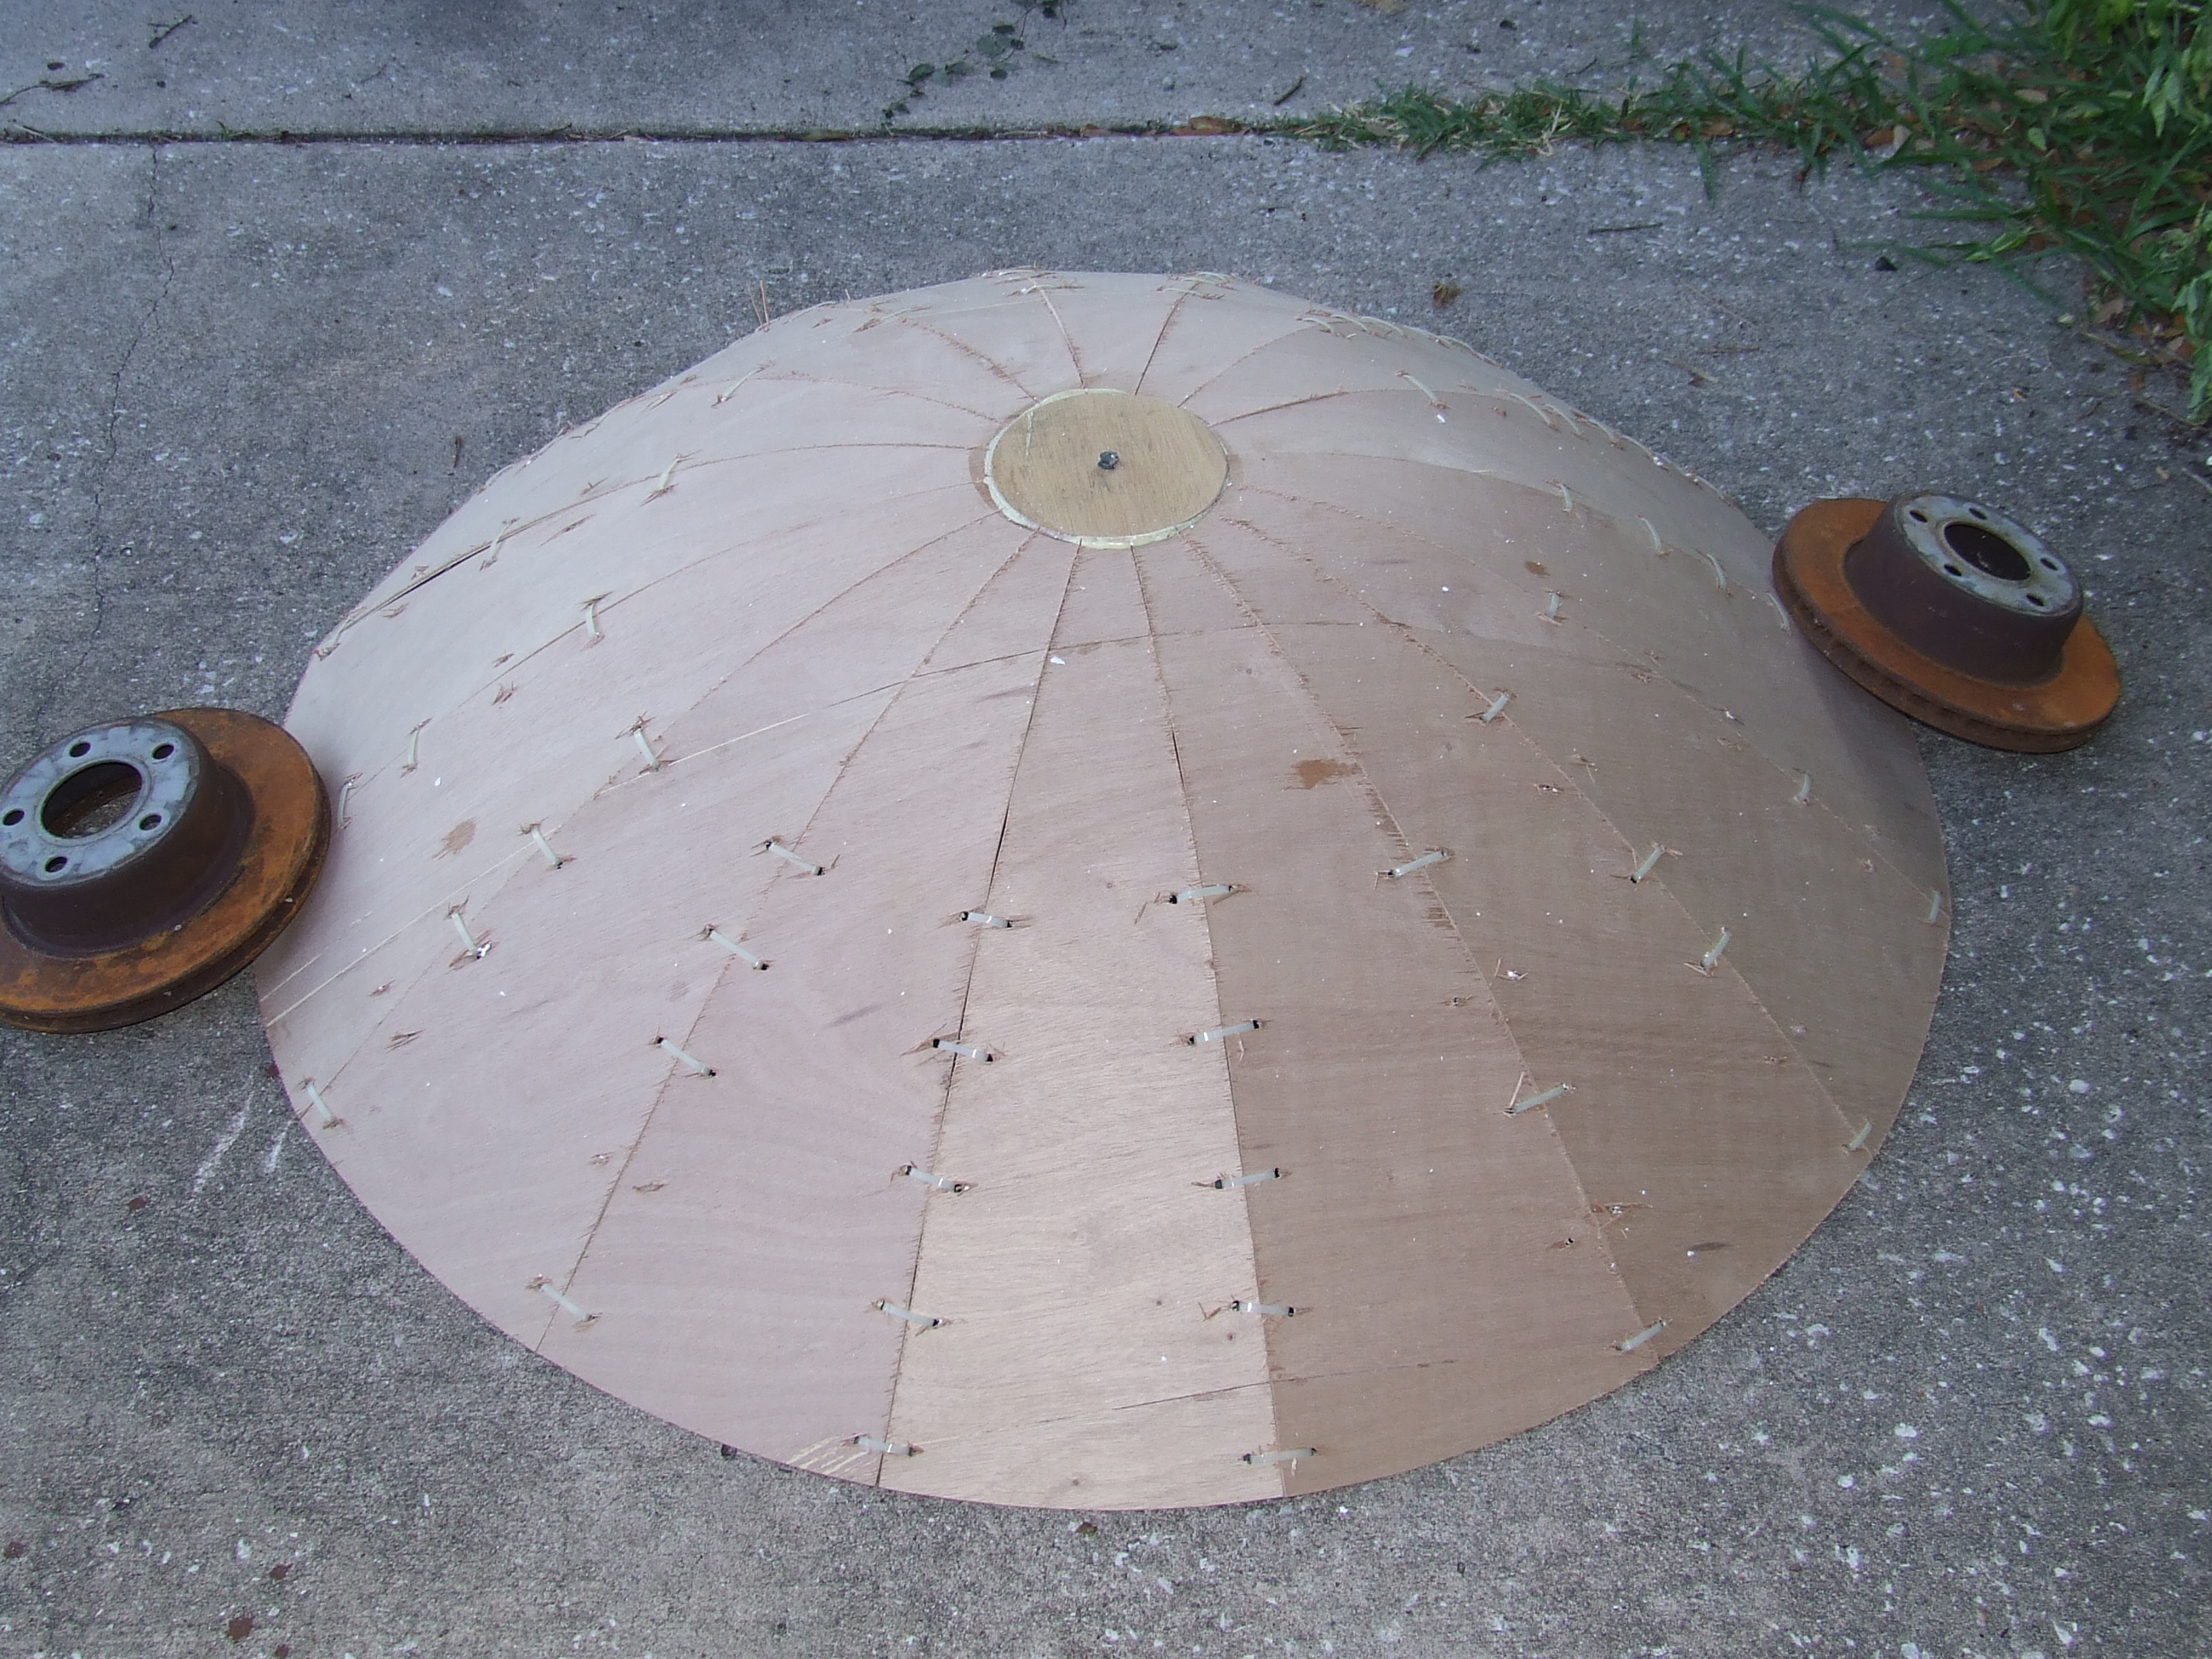 How to build a <strike>heliostat</strike> parabolic reflector